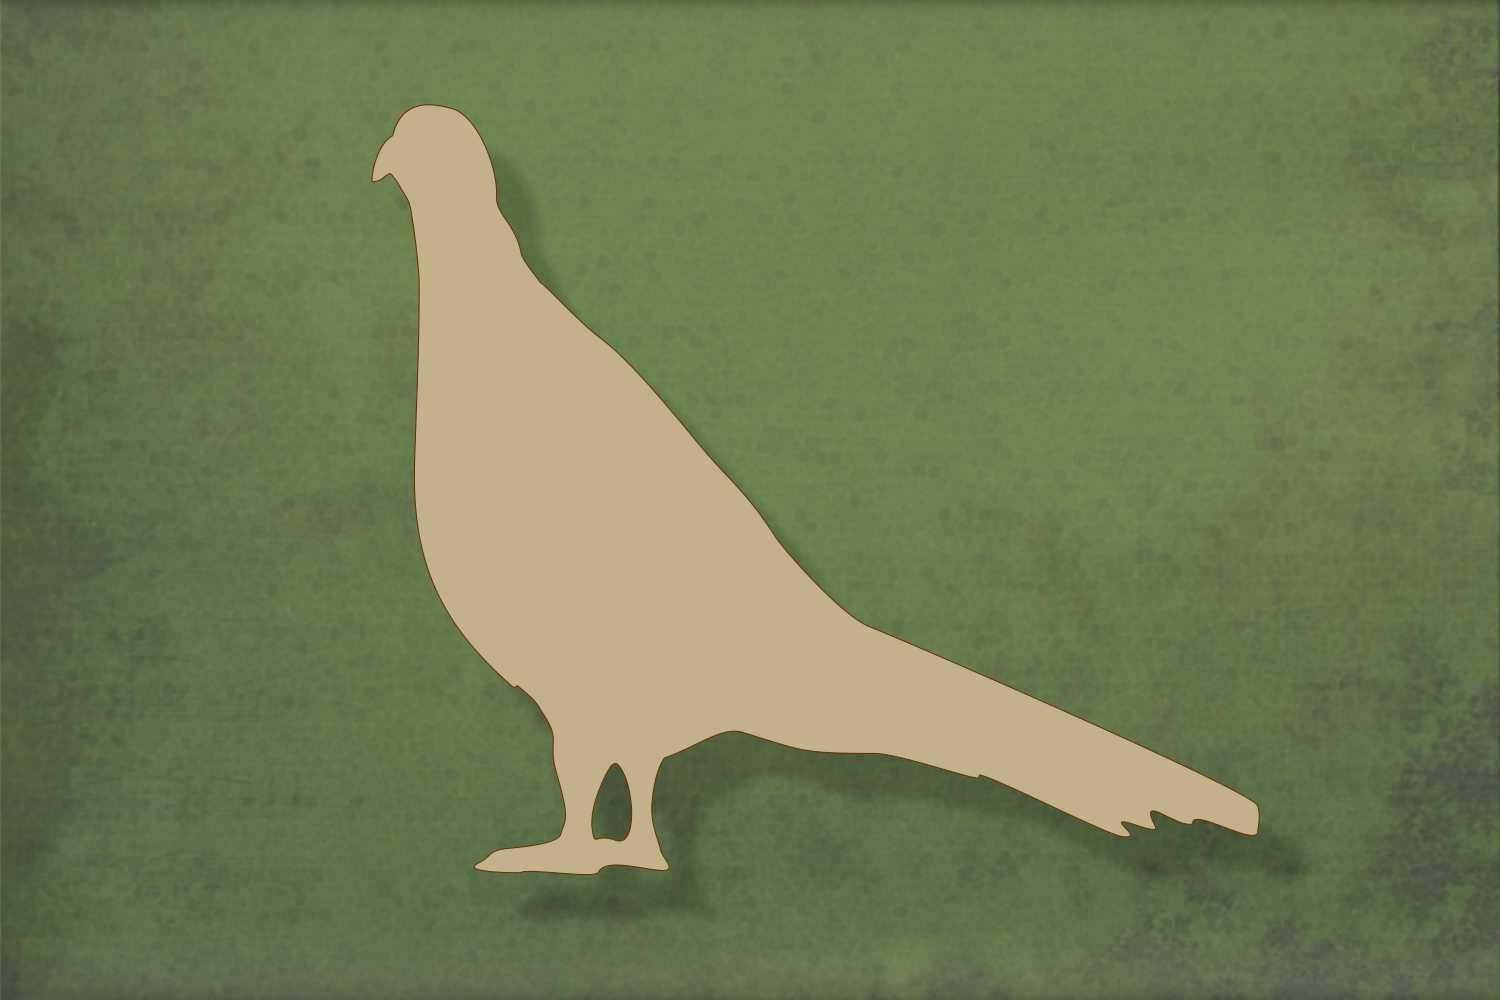 Laser cut, blank wooden Pheasant 1 with tail down shape for craft